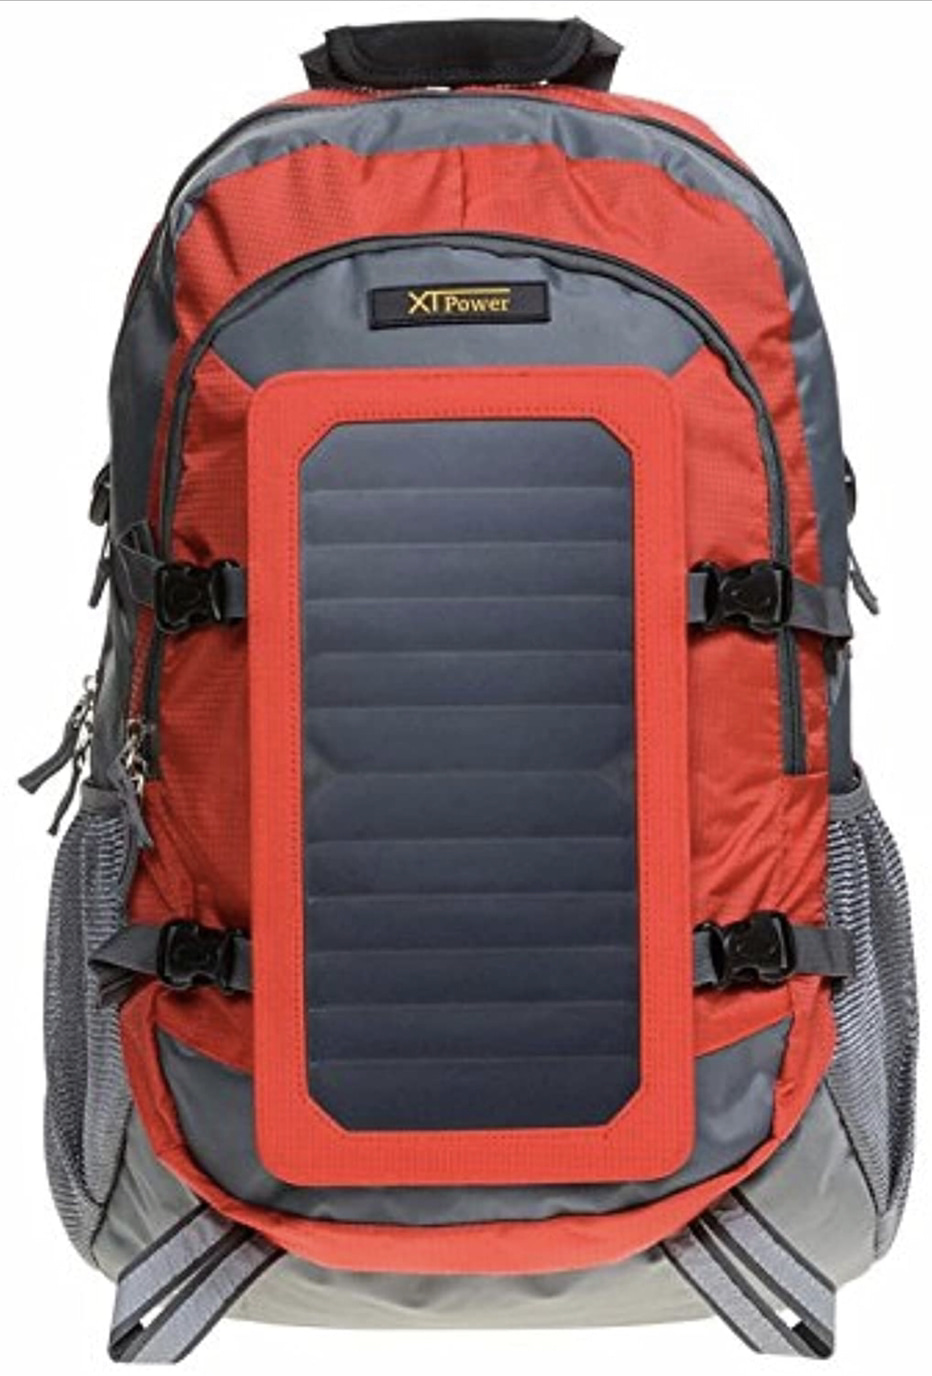 A display of the XTPower Hiking Solar Backpack